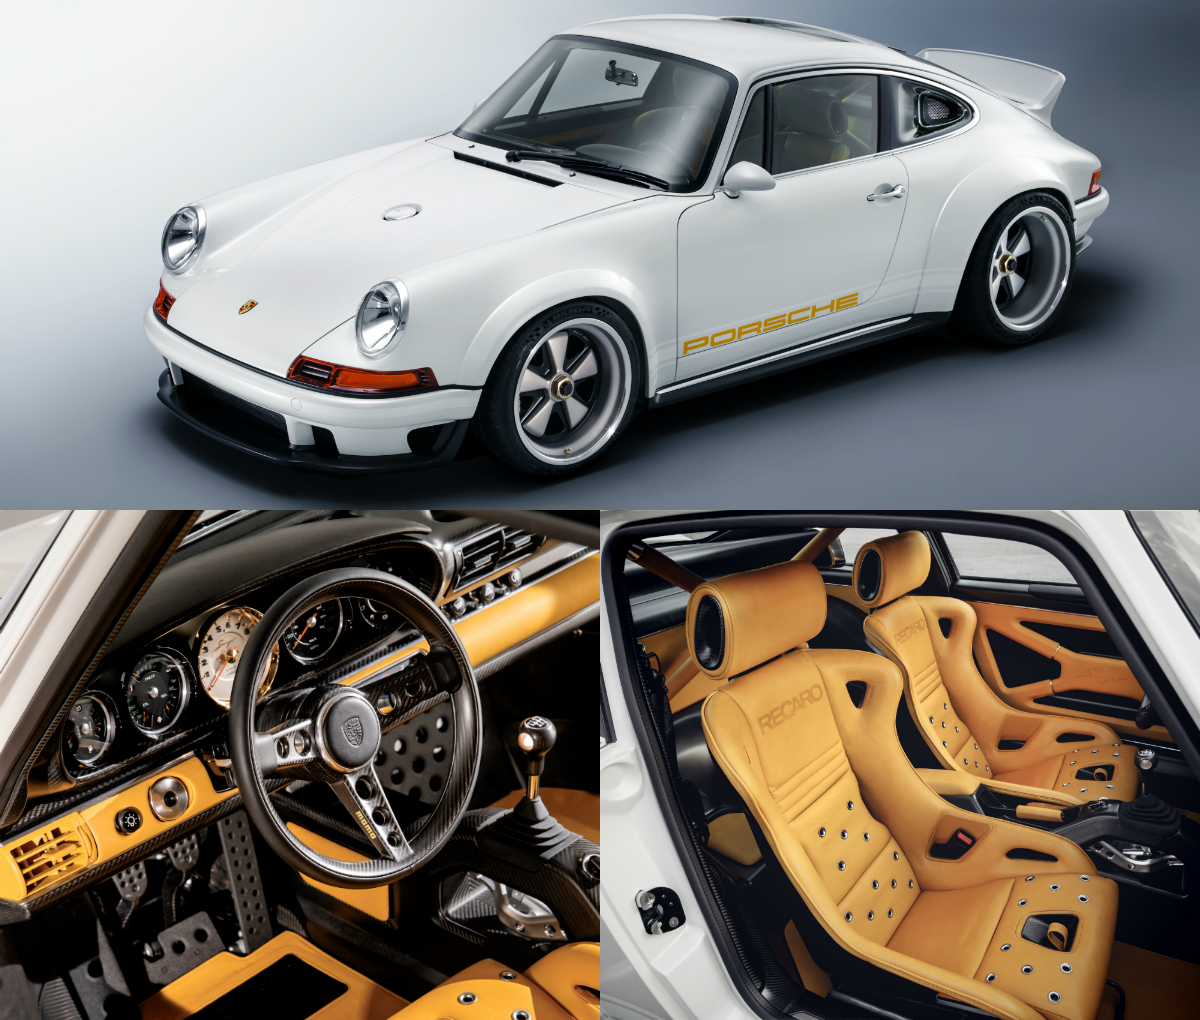 The DLS is a client-inspired collaboration between the California-based boutique restoration house, Williams Advanced Engineering and a formation of technical partners, in pursuit of the most advanced air-cooled Porsche 911 in the world.